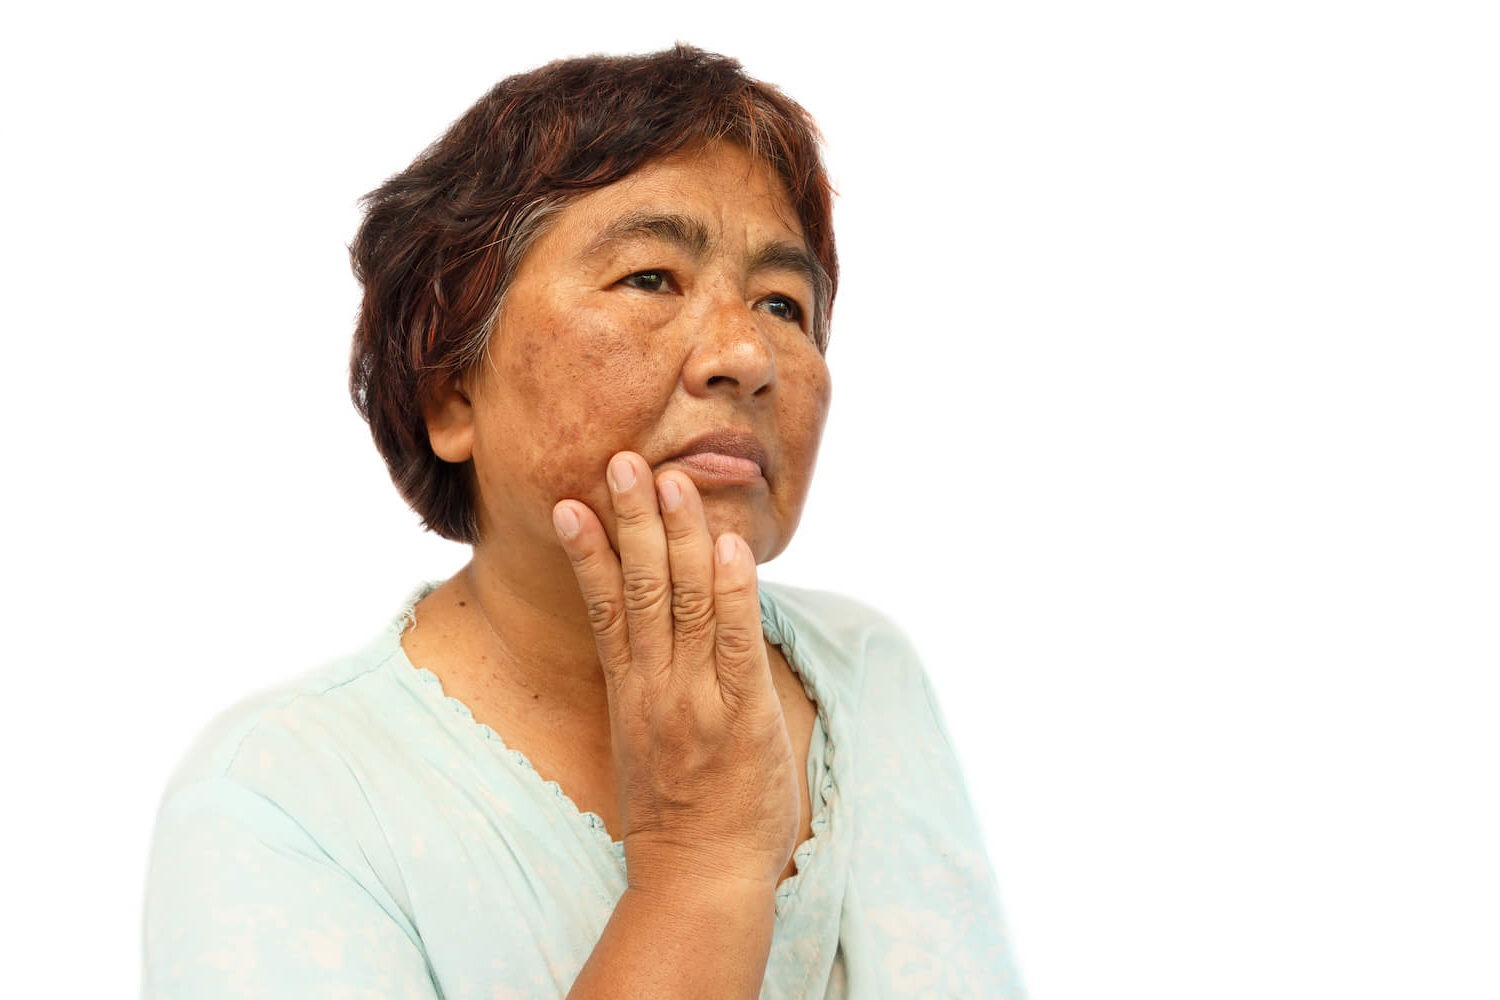 senior woman with age spots, for vascular treatment and reduction